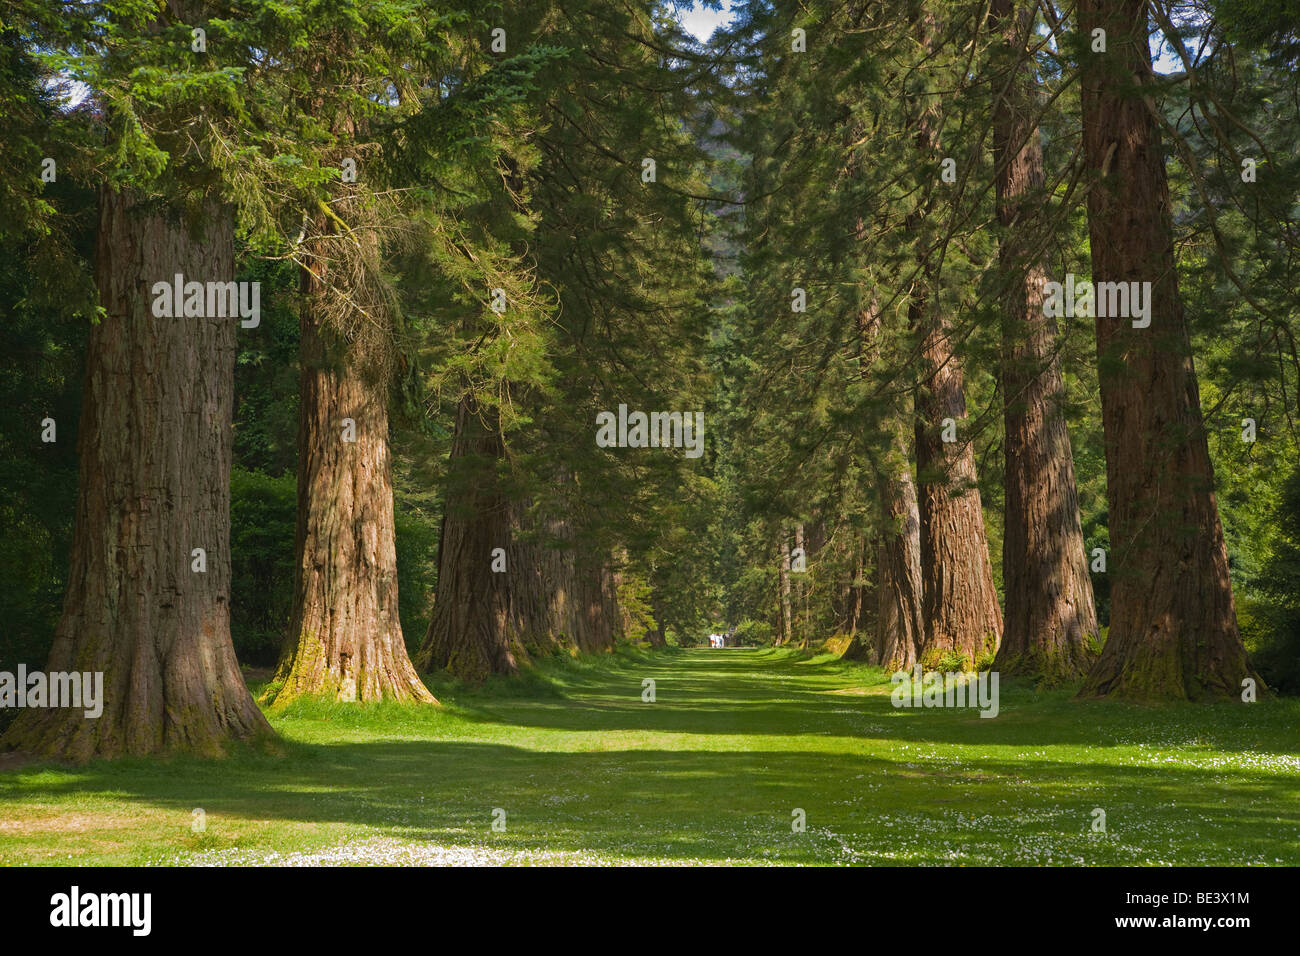 Redwood Avenue, Benmore Younger Botanic Garden, Argyl and Bute, Scotland. June, 2009 - Stock Image